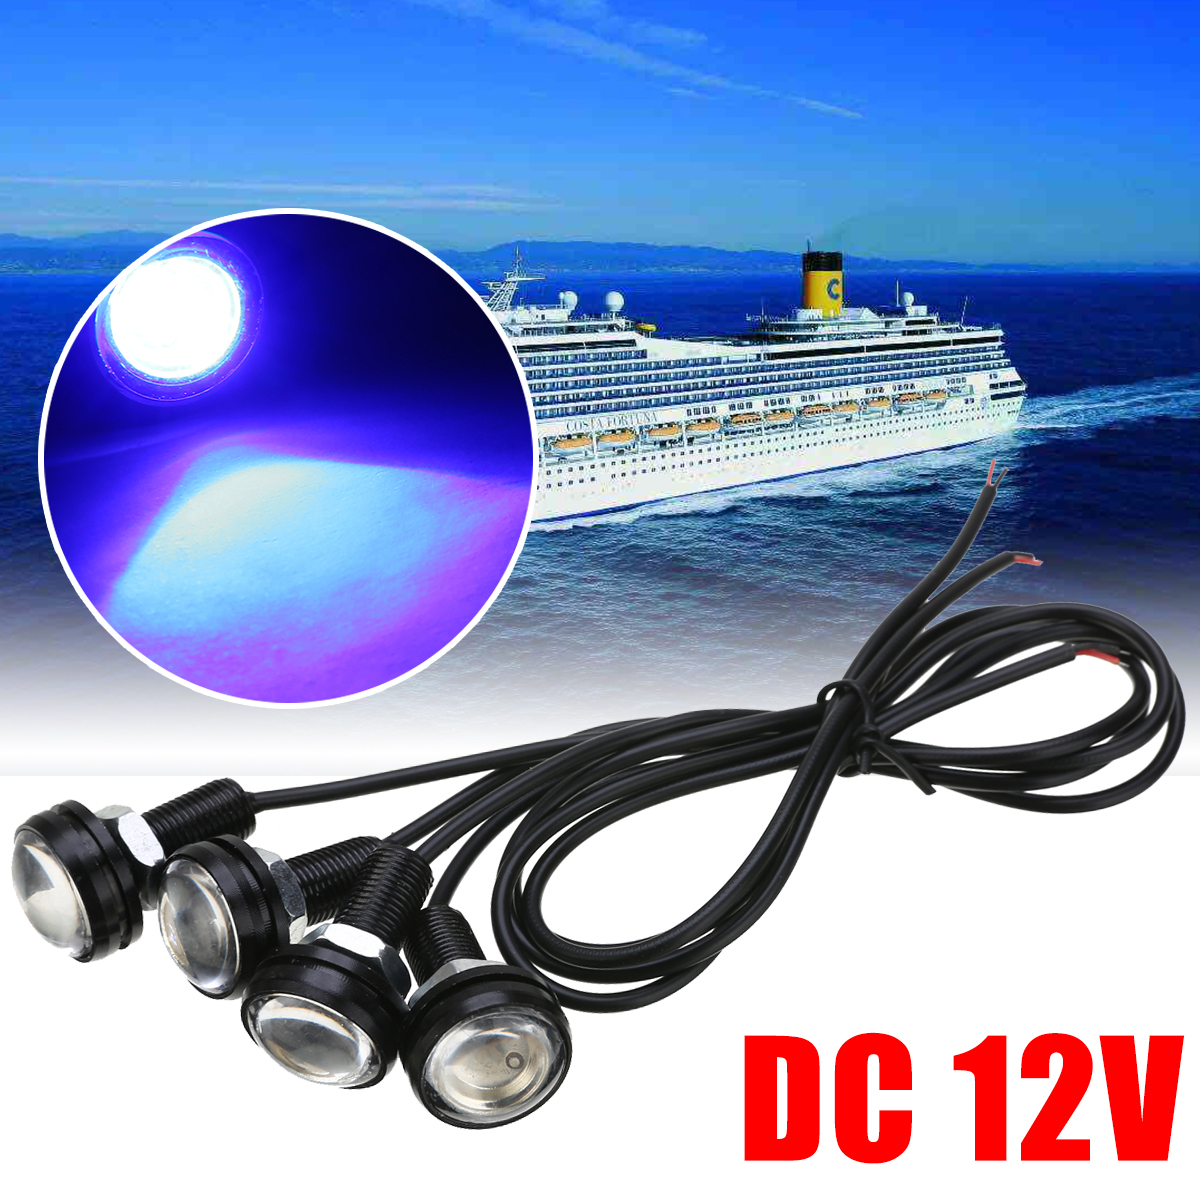 Universal 4Pcs/Set Blue LED Boat Plug Light Waterproof Garboard Drain Marine Underwater Fish Boat Light Parts Accessories